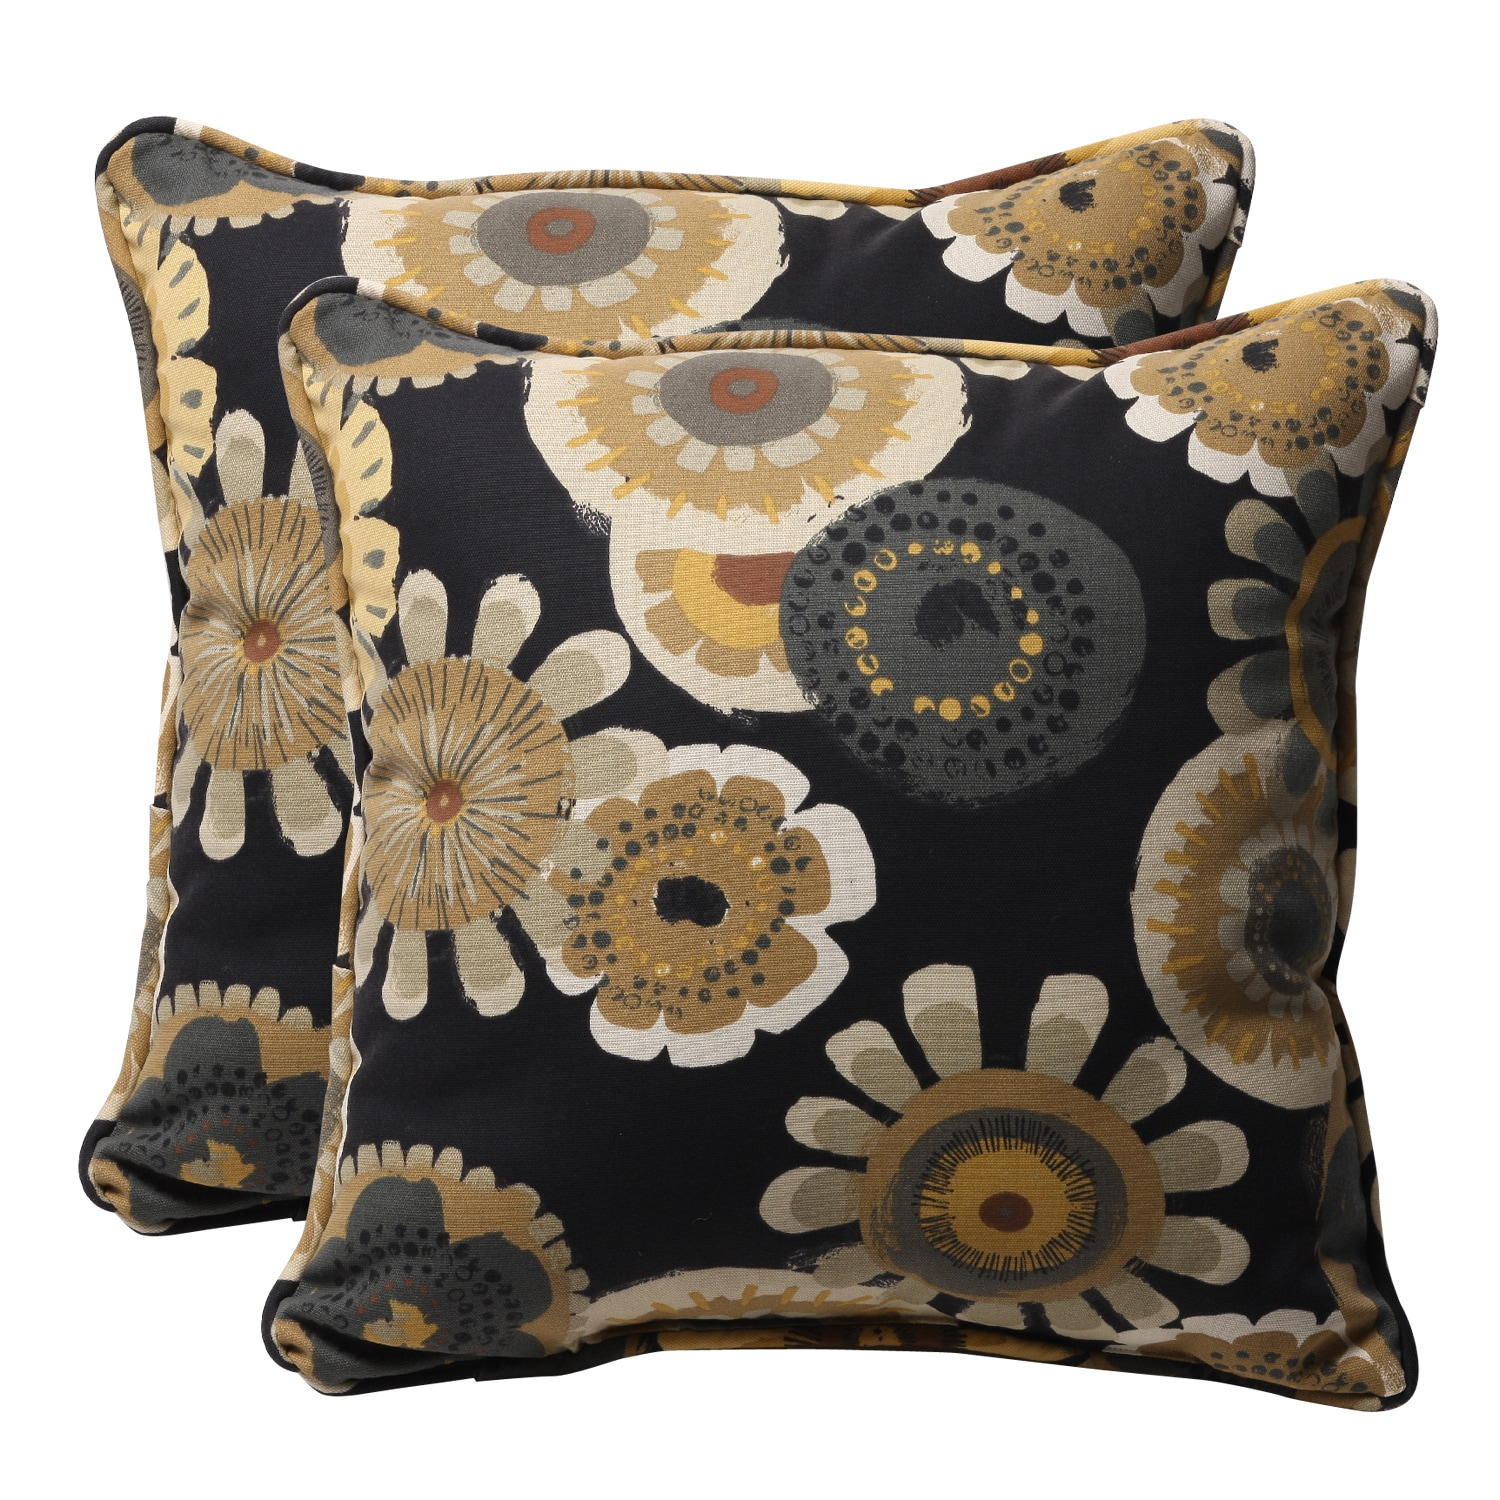 Decorative Pillows Home Goods